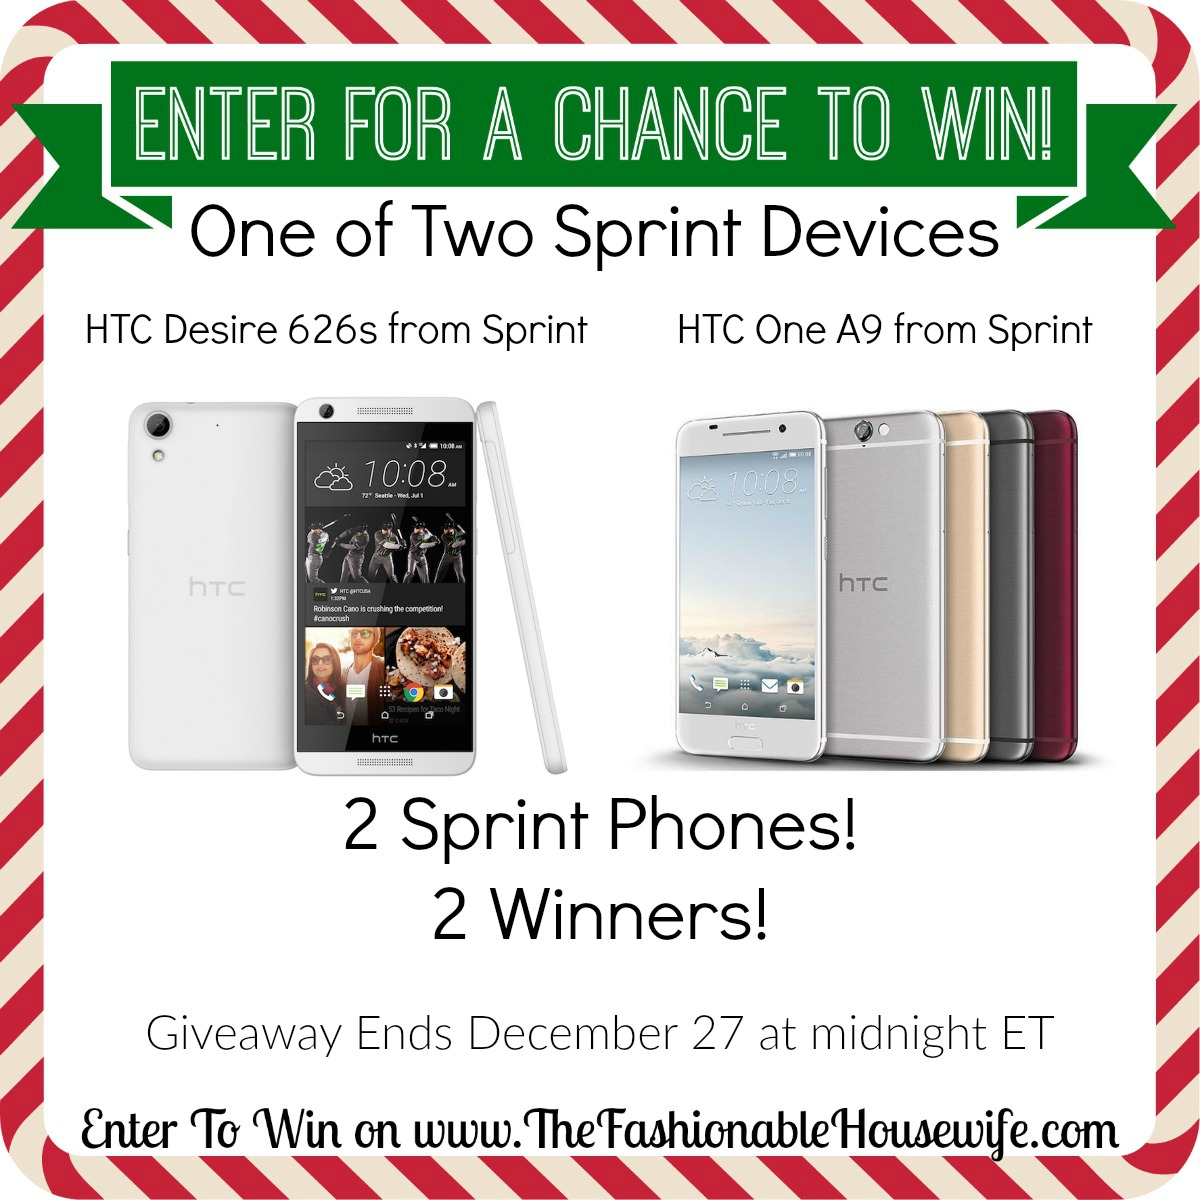 Enter To Win A Sprint Phone 2 Winners